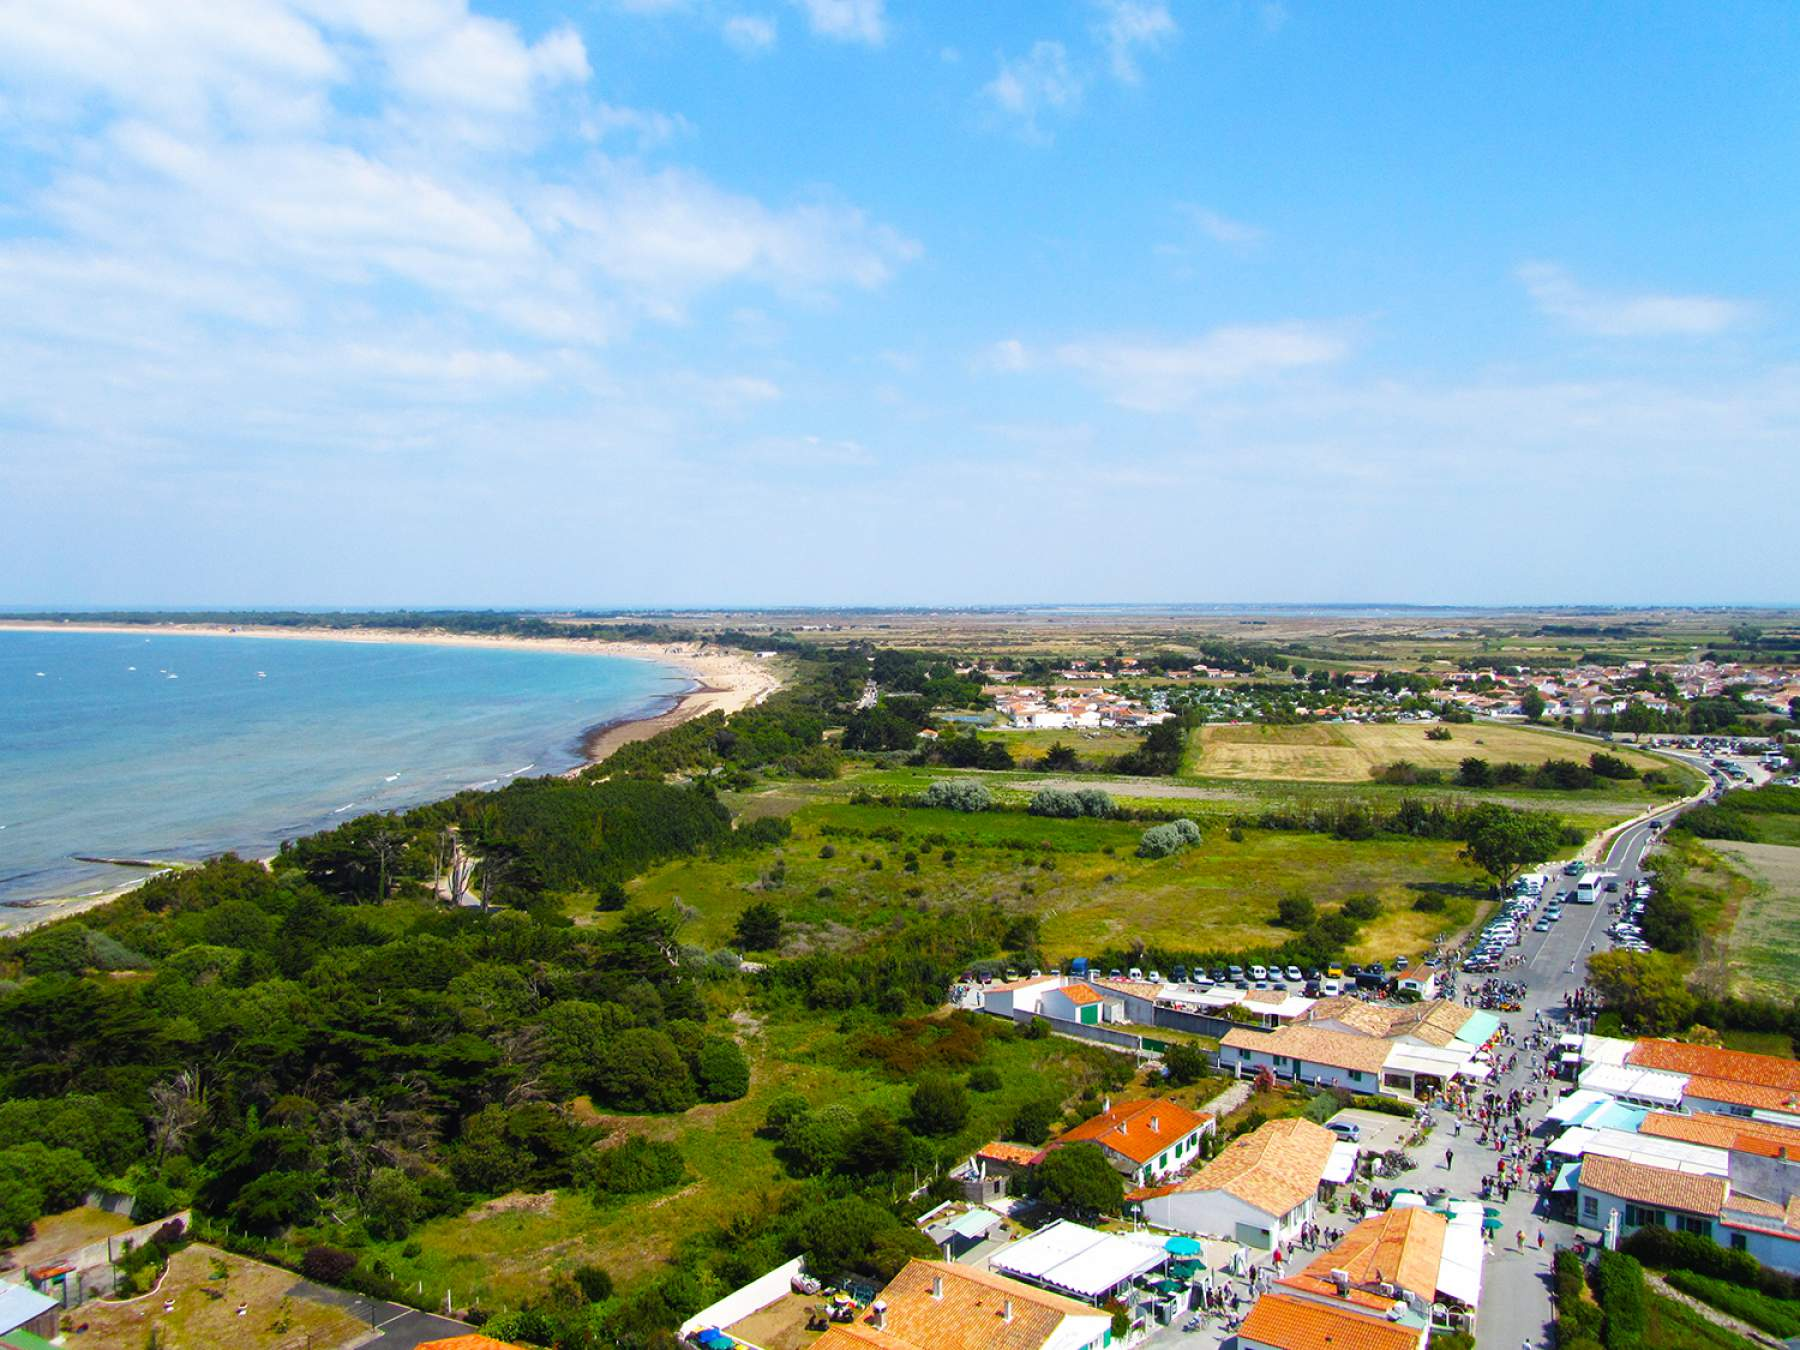 Panoramic vue of the Island of Re, France